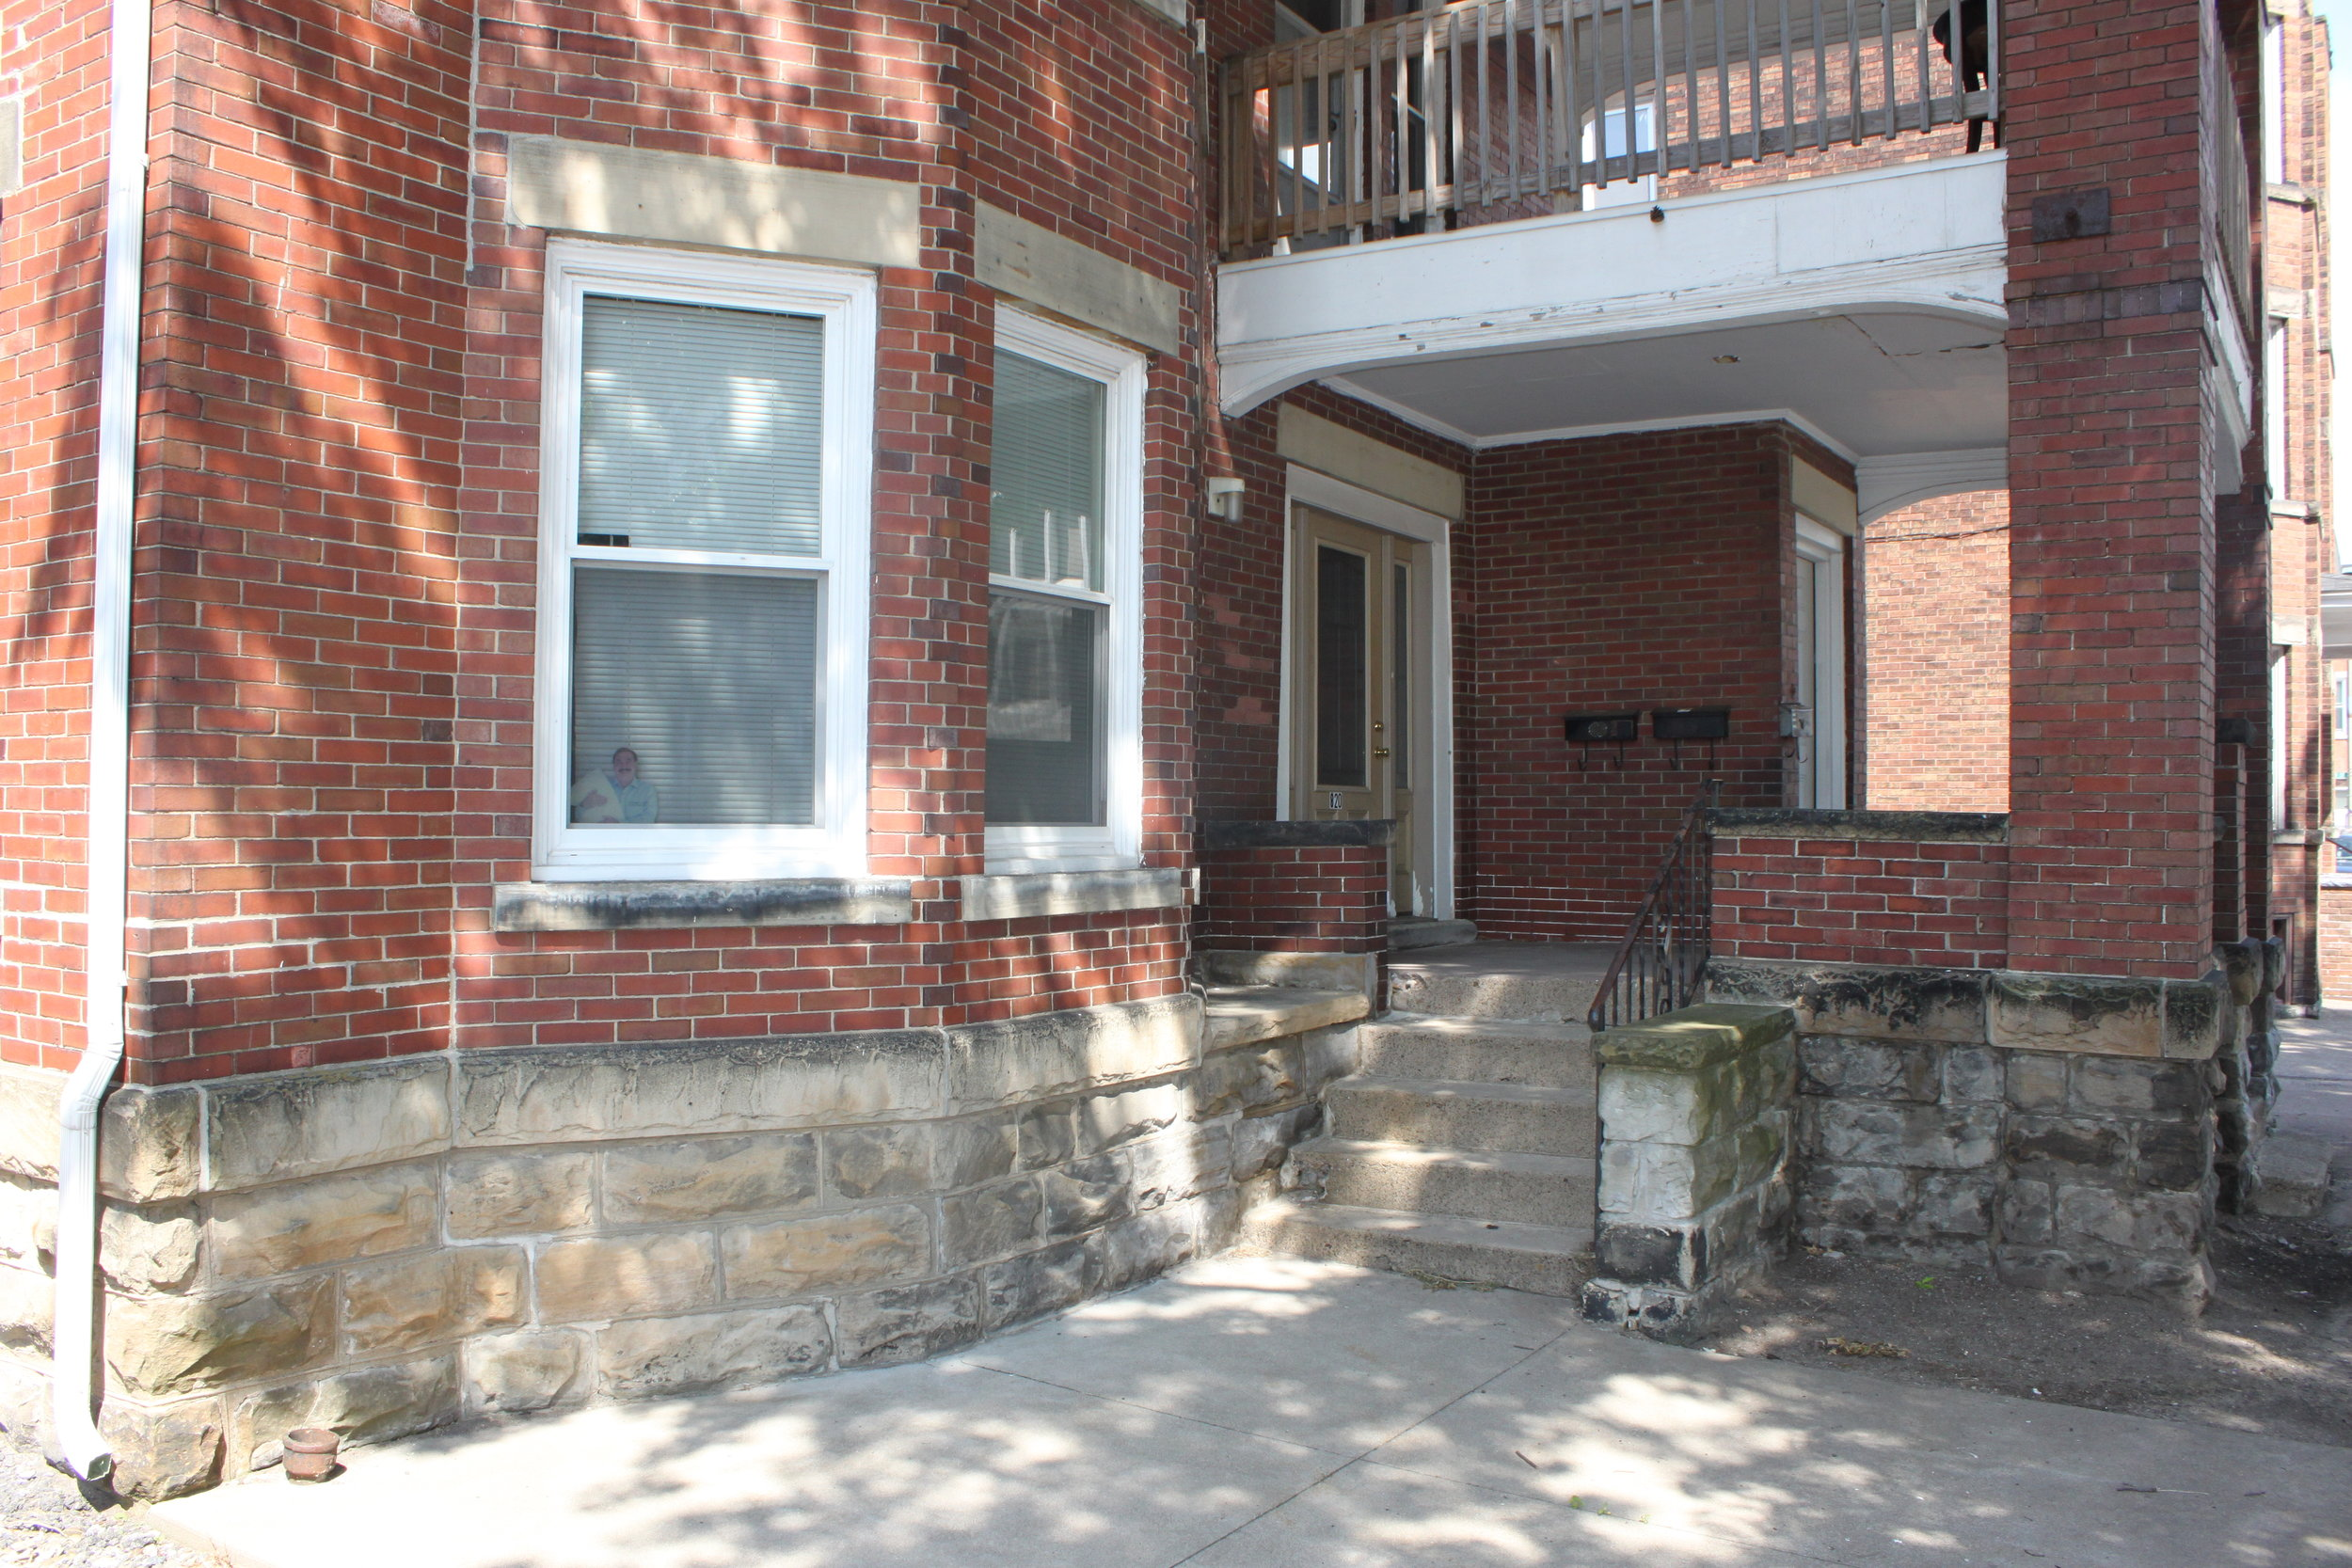 The Morosky Manor - 820 Sassafras St. Erie PA 16501Located directly across the street from Morosky and Zurn buildings, this property is the prime location for Gannon students who like to be close to Campus. This building offers off street parking and onsite laundry.